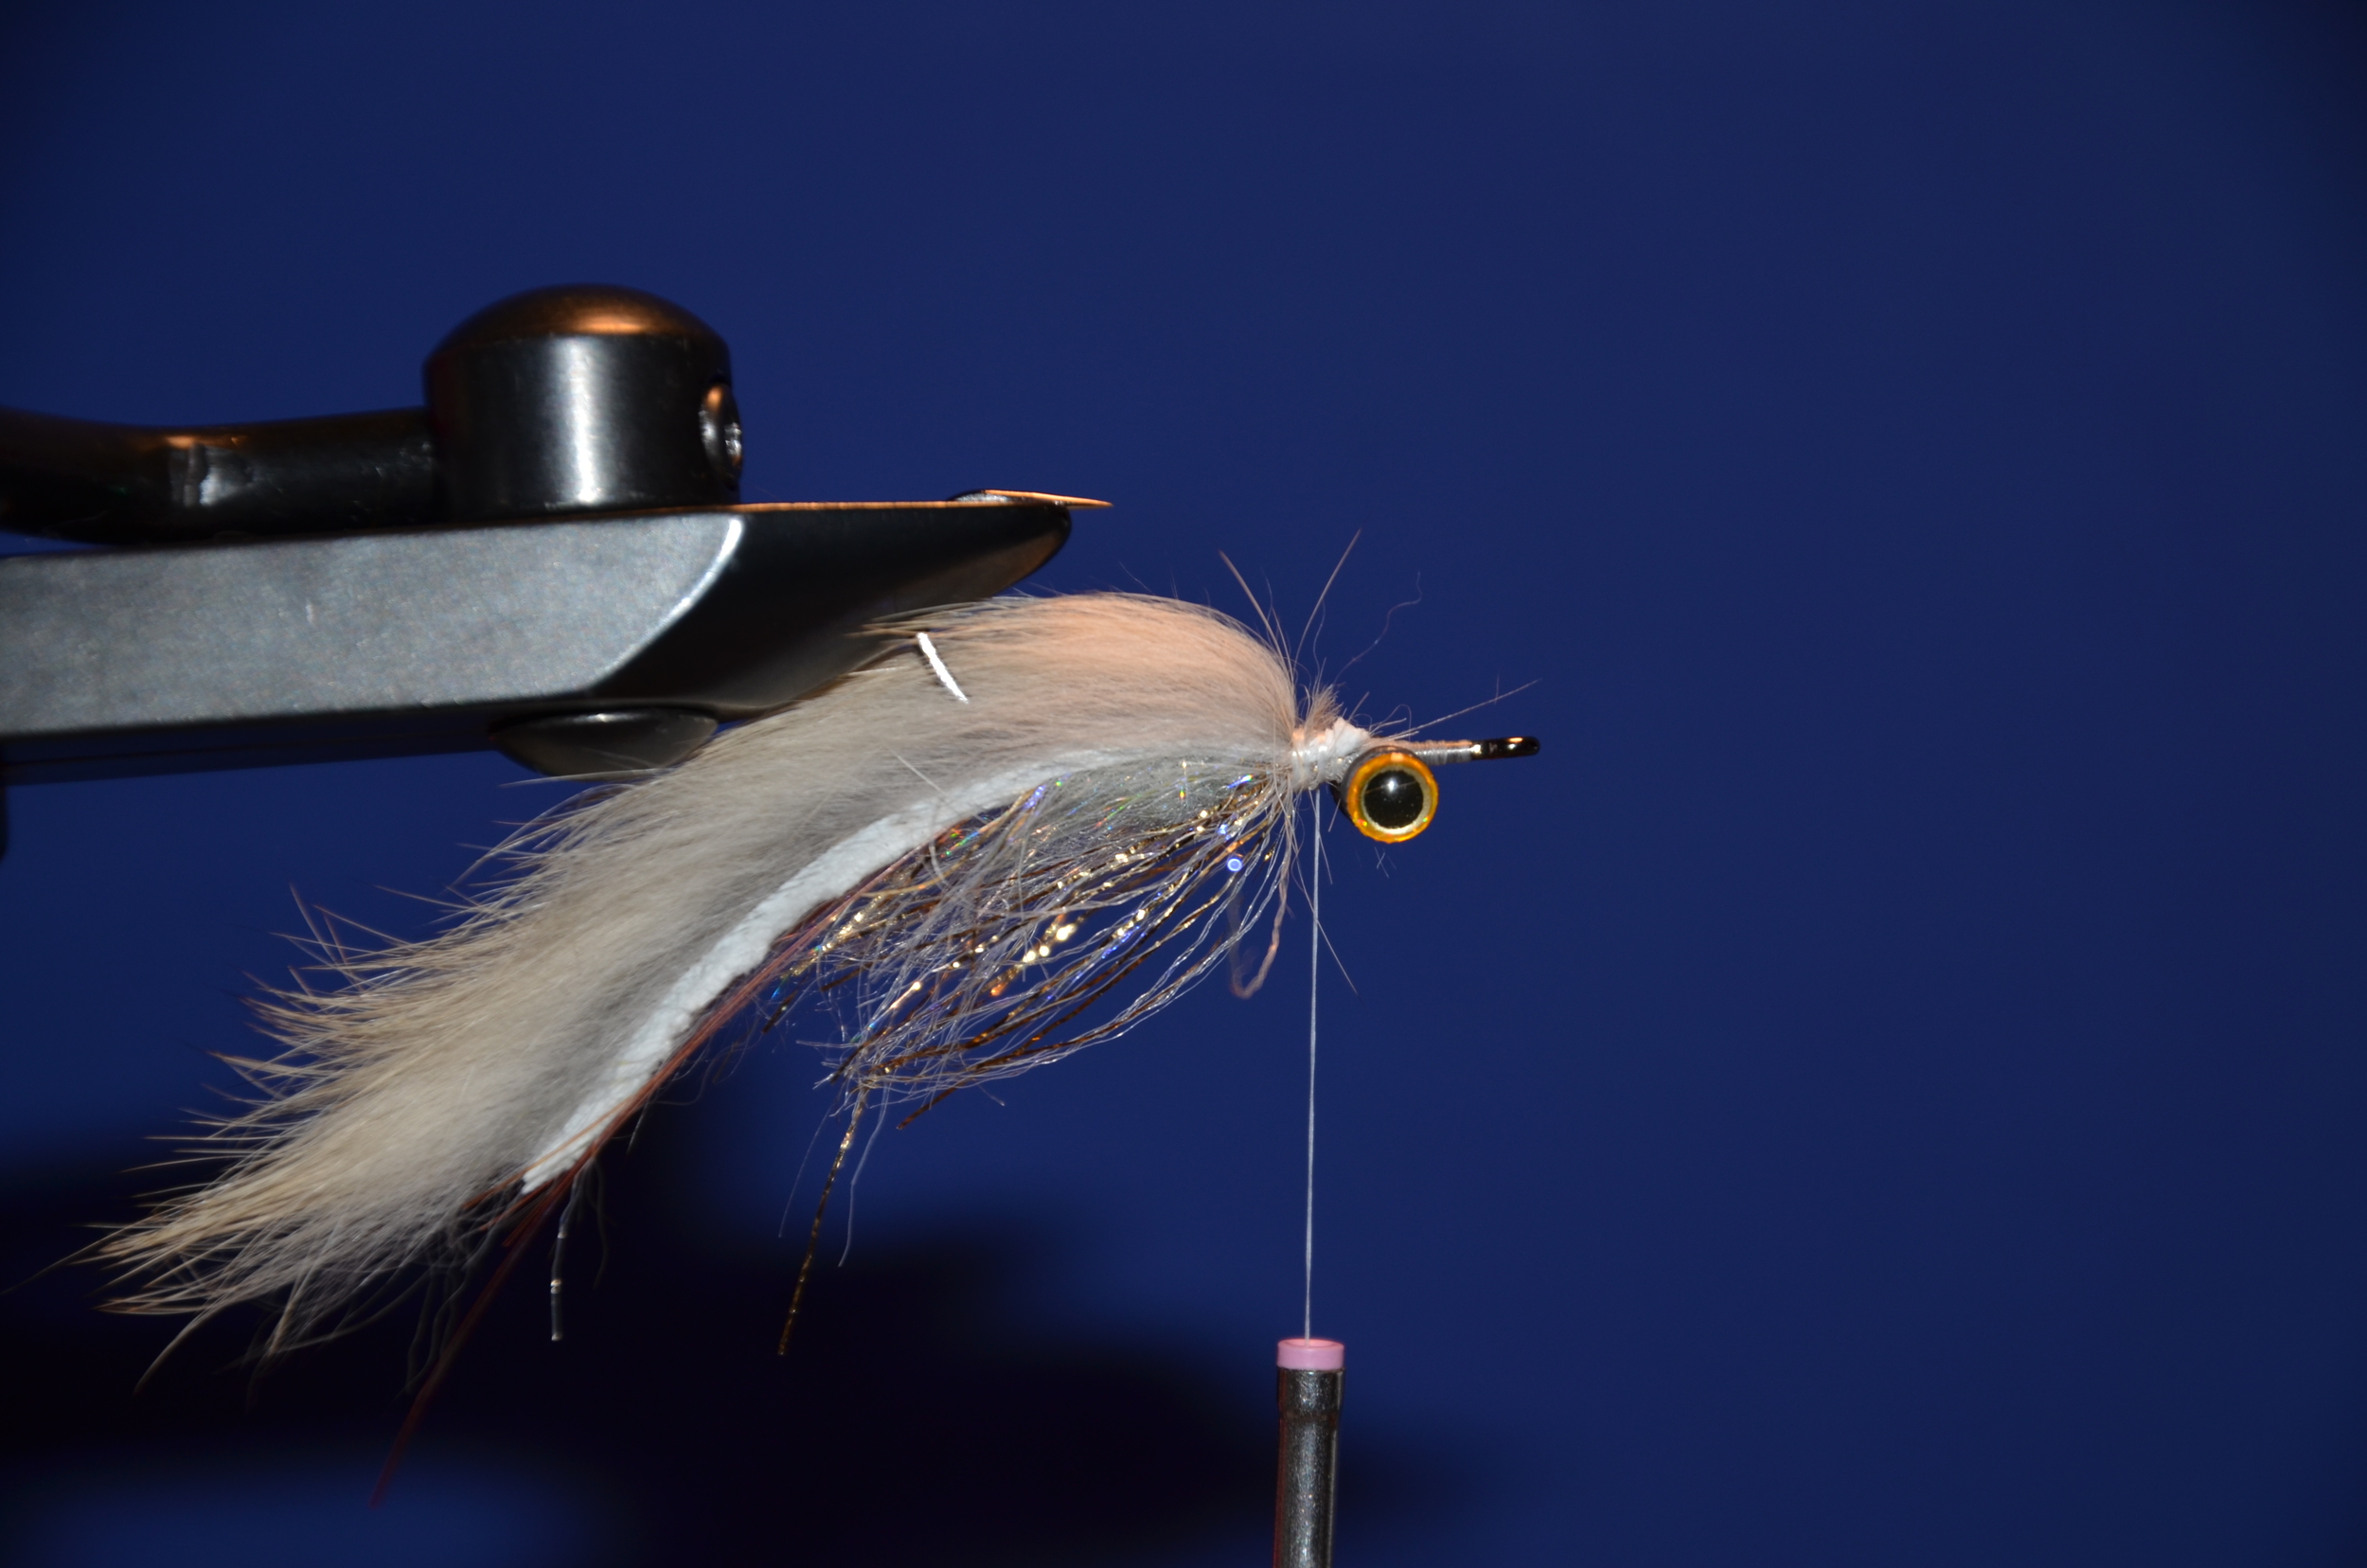 Add tan/flesh zonker strip, i meausre a hook shank and poke it though and tie it down